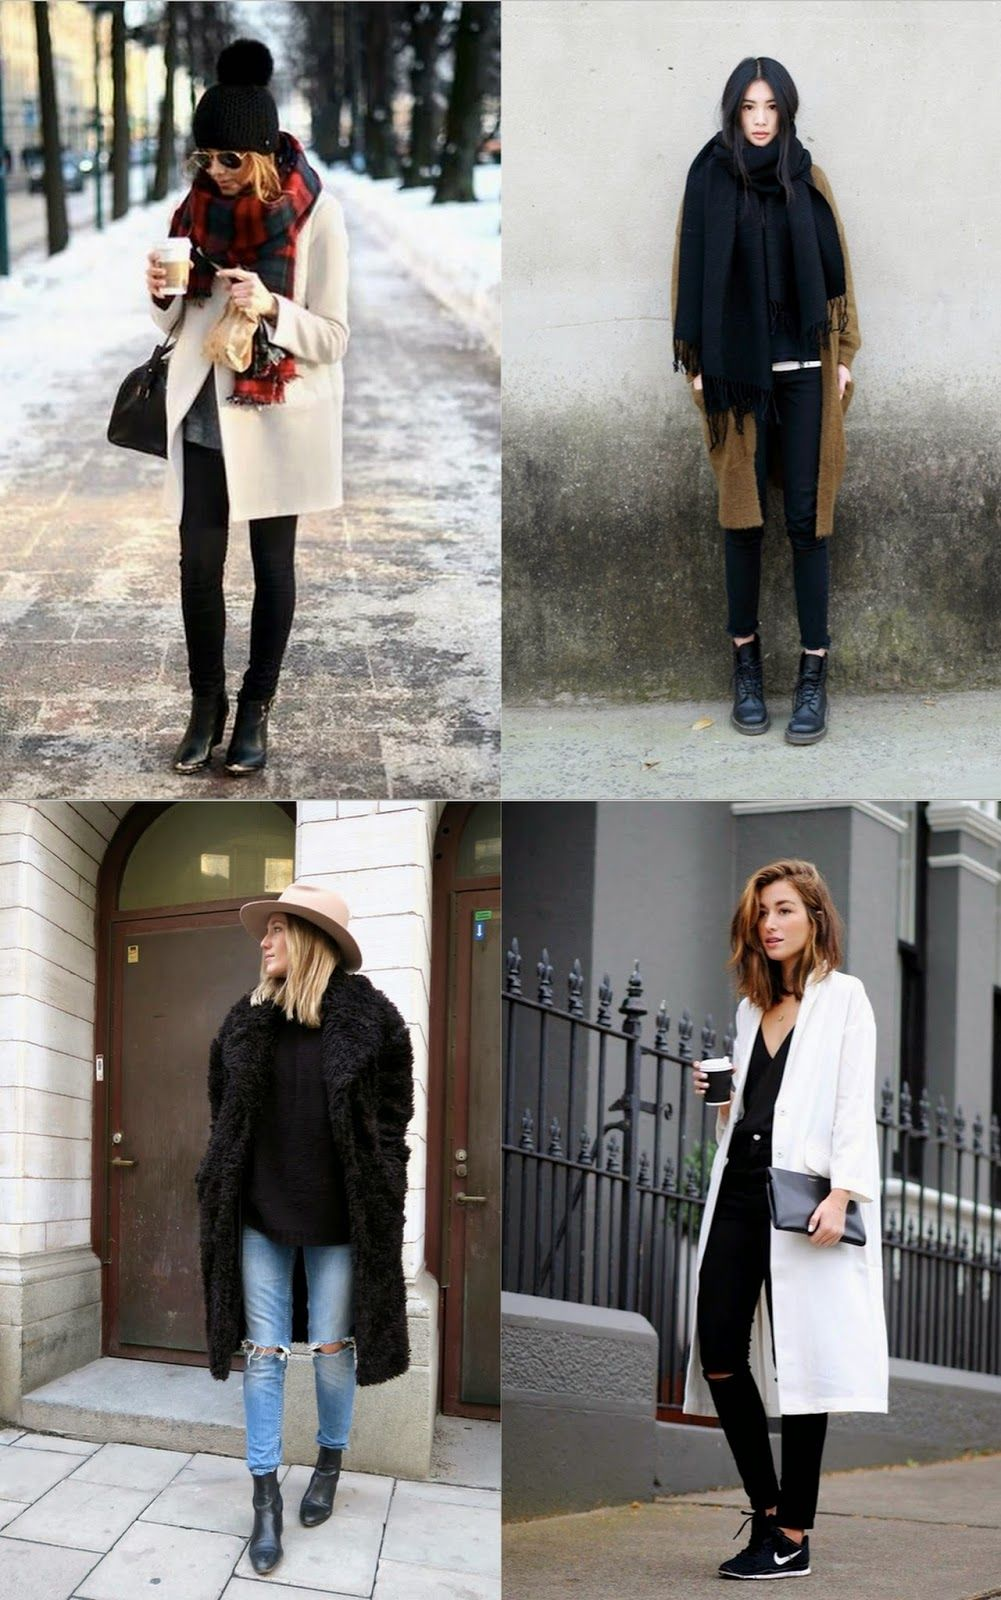 HEY NATALIE JEAN  HOW TO DRESS FOR A NEW YORK CITY WINTER  db352ab4c